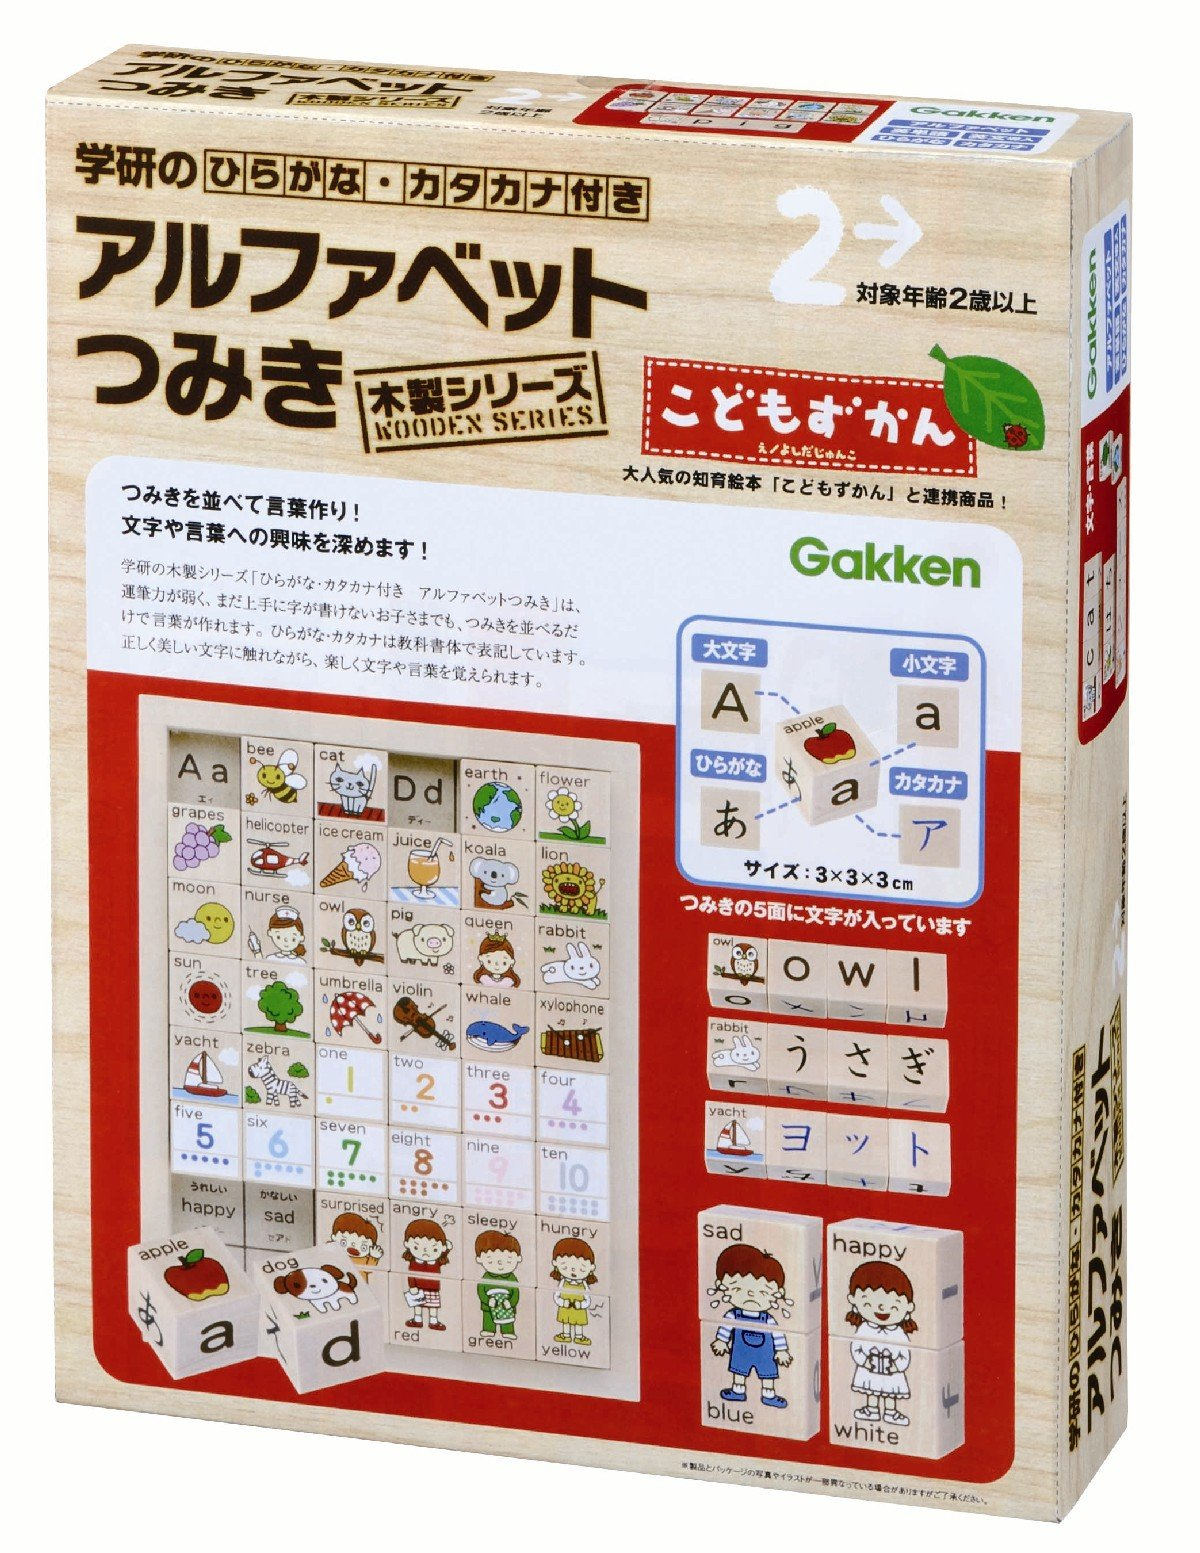 Wooden Hiragana, Katakana series with alphabet blocks (japan import) by Gakken by Gakken (Image #1)